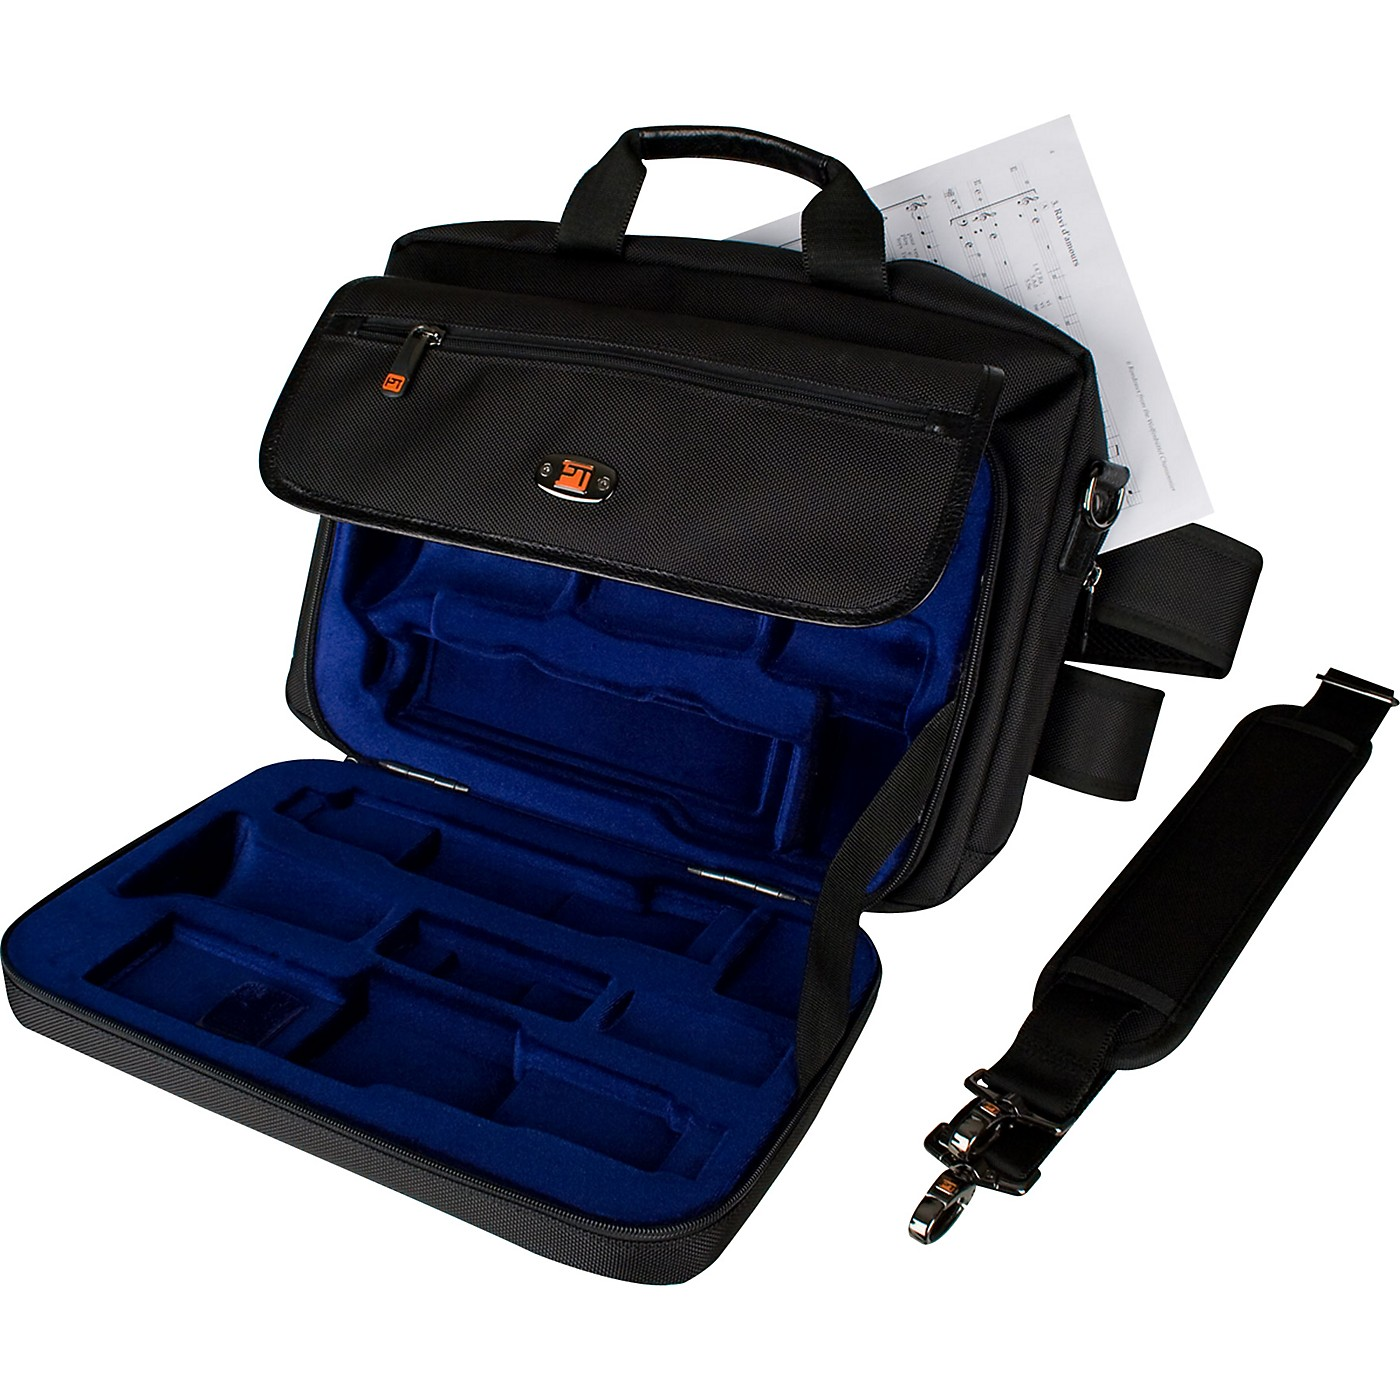 Protec LUX Clarinet Case with Sheet Music Messenger Bag thumbnail